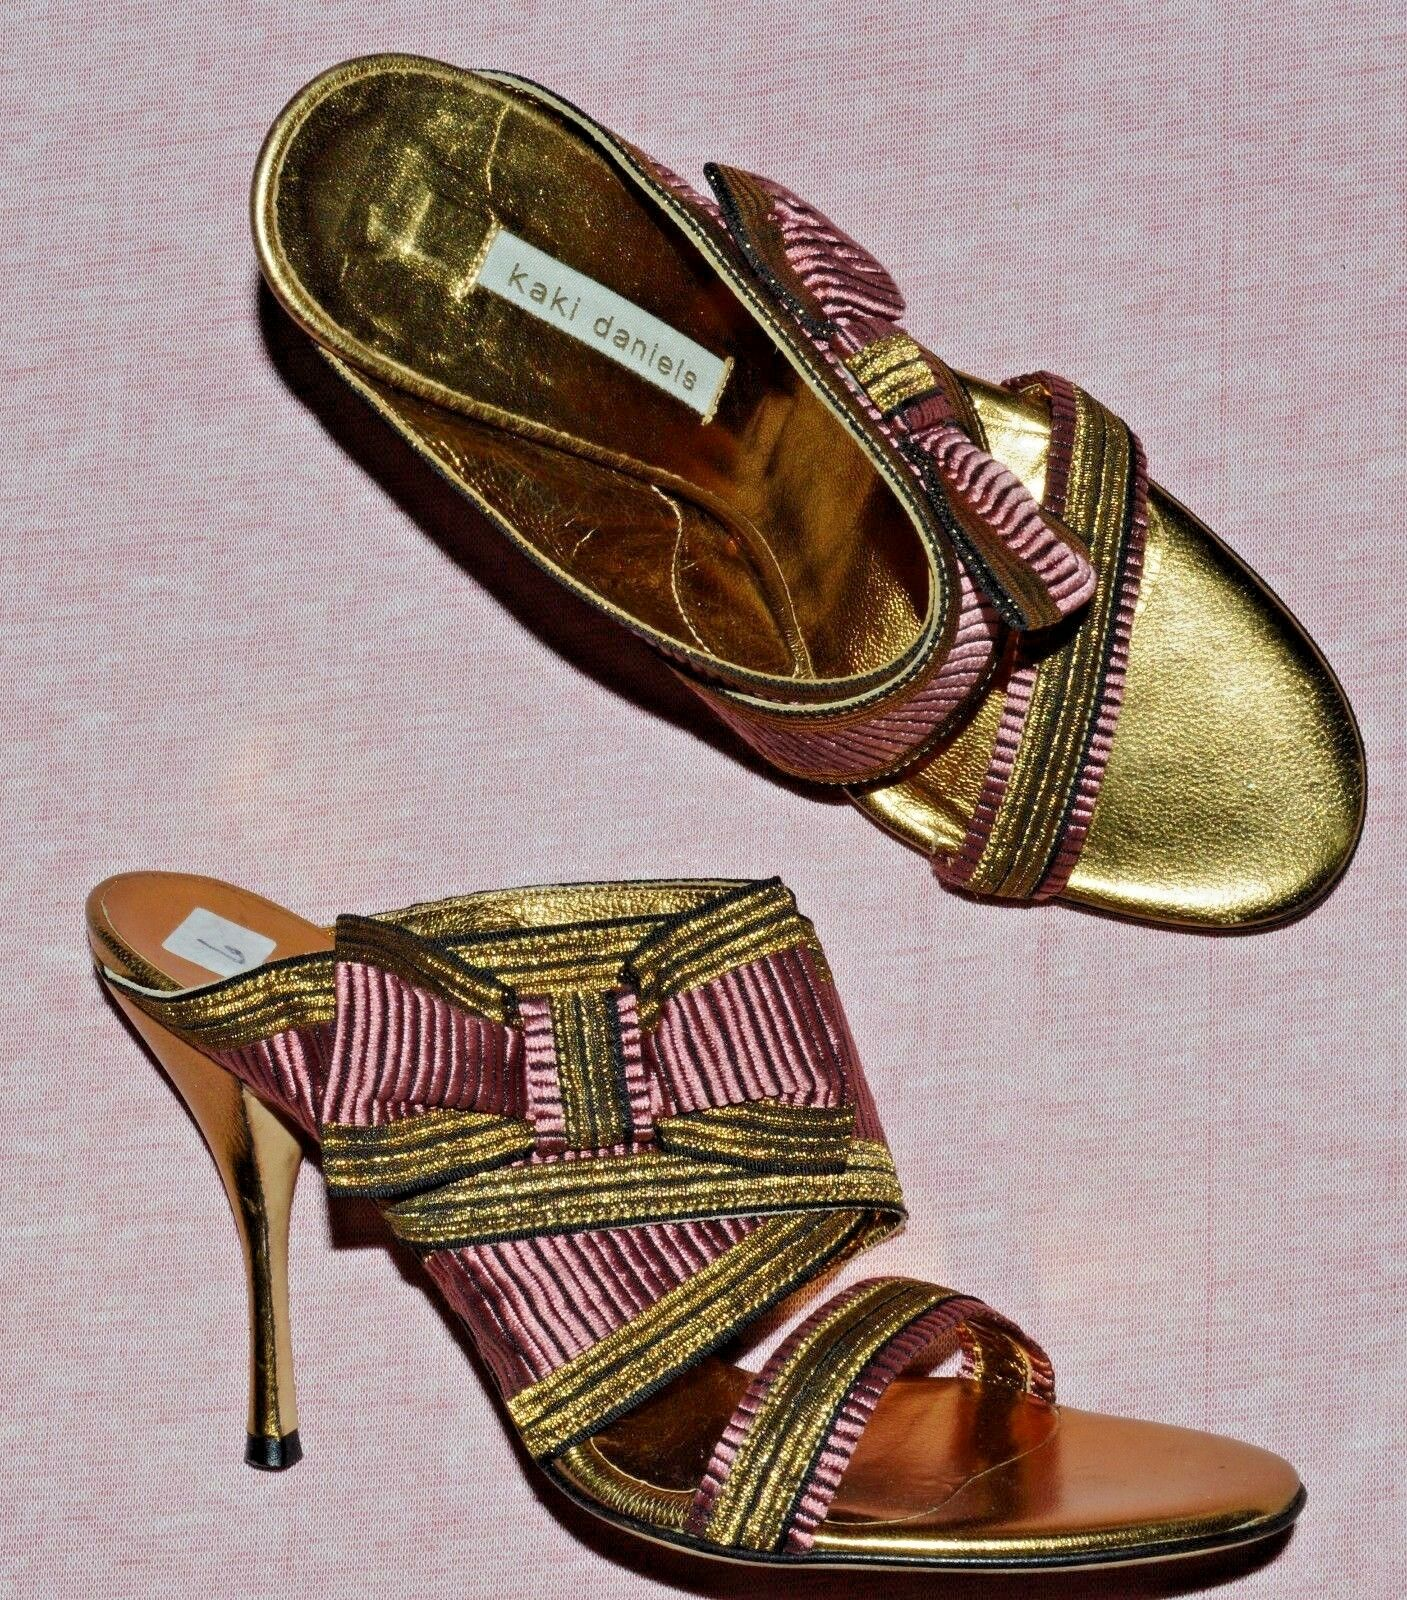 KAKI DANIELS NEW 6 M 36 PINK gold FABRIC LEATHER LEATHER LEATHER SLIDE SANDALS MADE IN ITALY 0918c9